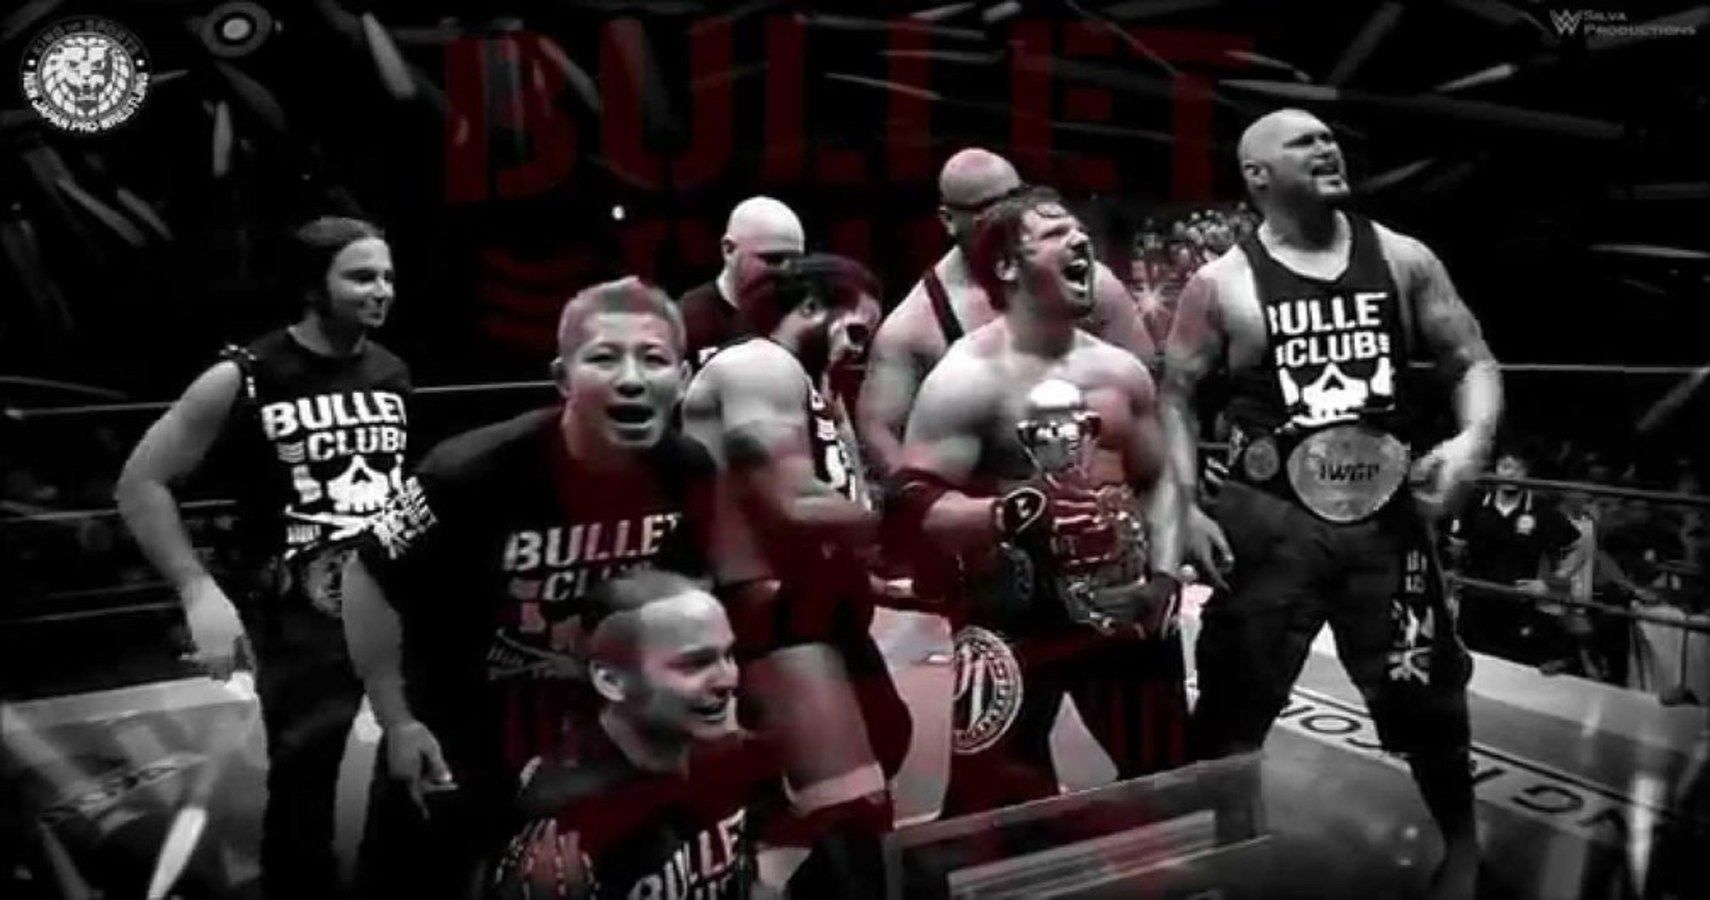 bullet club wwe reference name drop removed finn balor karl anderson luke gallows